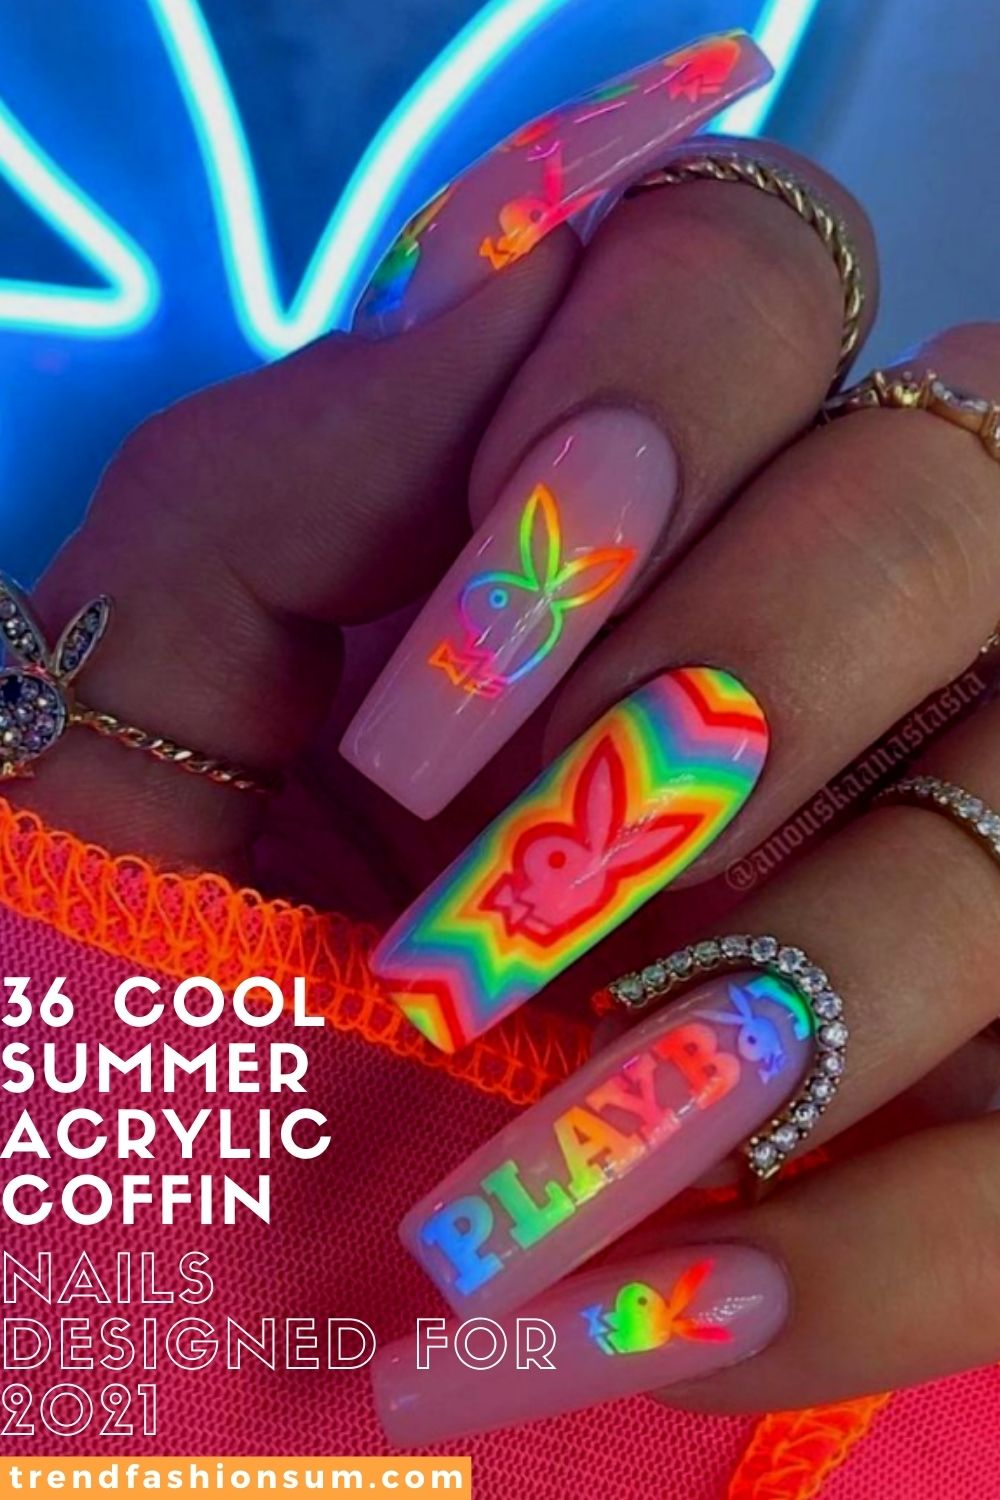 36 Cool Summer Acrylic Coffin Nails Designed for 2021